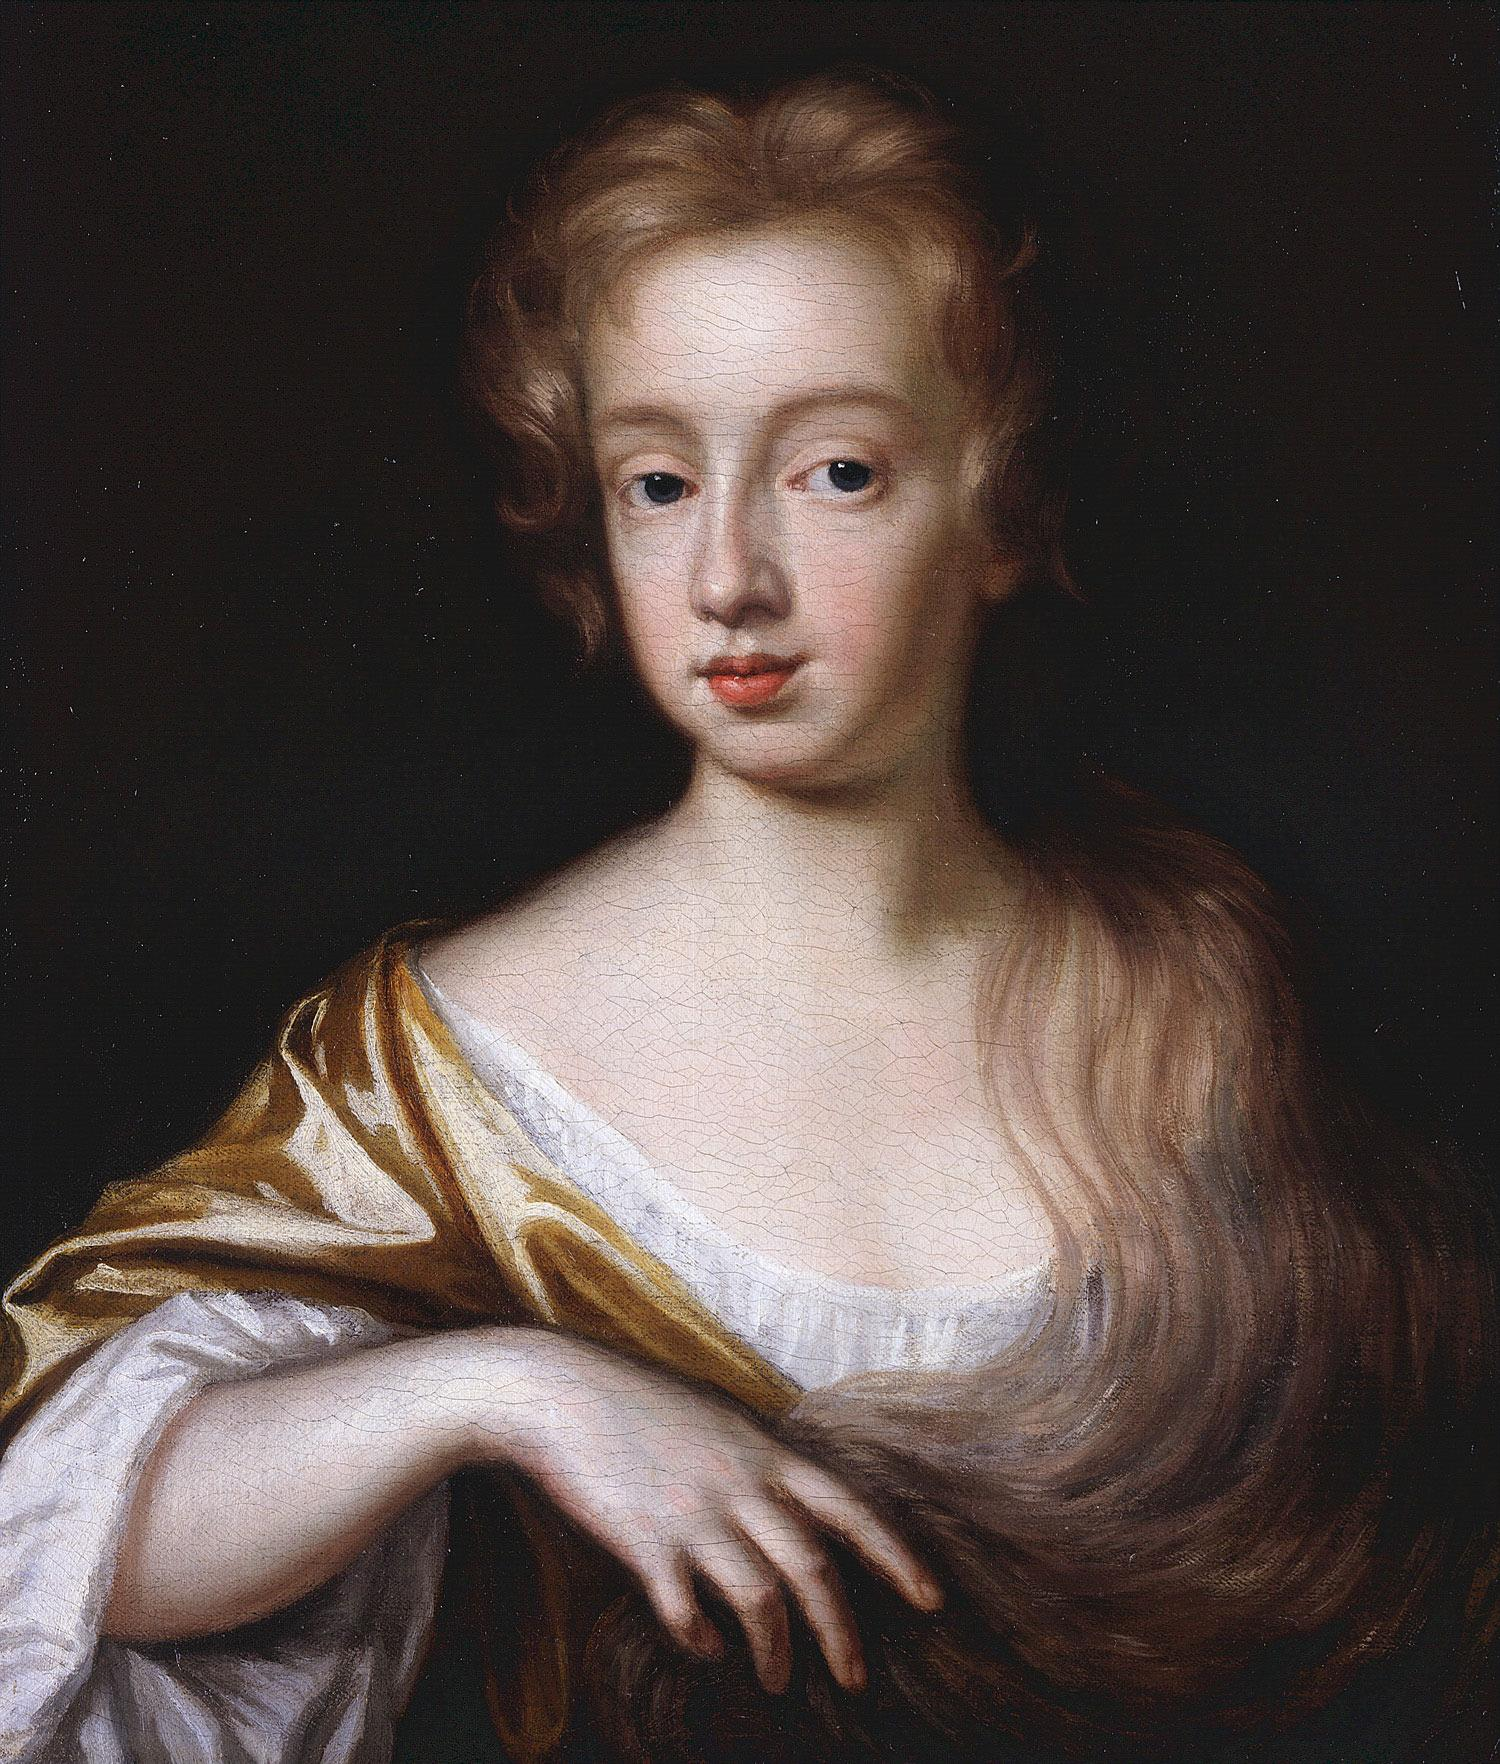 Portrait of unknown young girl, c. 1680, by Mary Beale